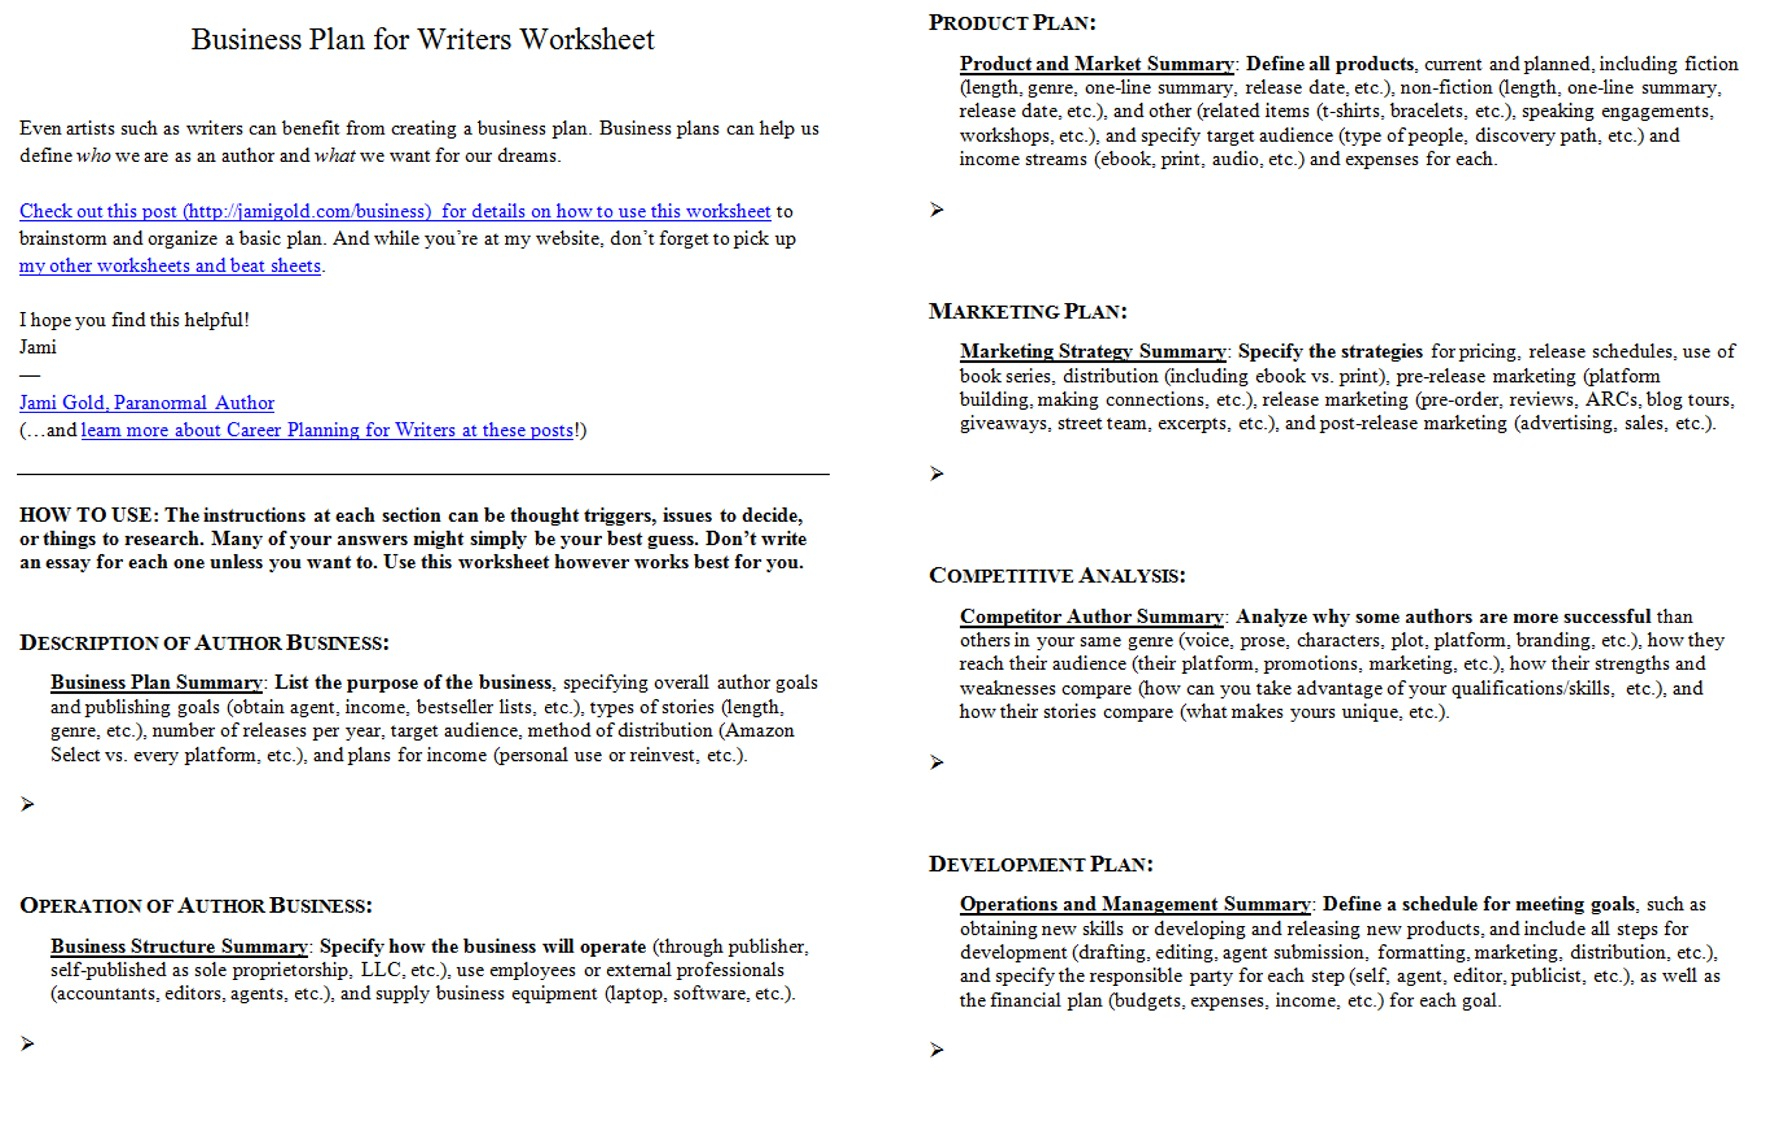 Weirdmailus  Gorgeous Worksheets For Writers  Jami Gold Paranormal Author With Interesting Screen Shot Of Both Pages Of The Business Plan For Writers Worksheet With Enchanting Sixth Grade Math Worksheets Also Irs Insolvency Worksheet In Addition Letter Recognition Worksheets And Parts Of Speech Worksheet As Well As Rational And Irrational Numbers Worksheet Additionally Multiplying Mixed Numbers Worksheet From Jamigoldcom With Weirdmailus  Interesting Worksheets For Writers  Jami Gold Paranormal Author With Enchanting Screen Shot Of Both Pages Of The Business Plan For Writers Worksheet And Gorgeous Sixth Grade Math Worksheets Also Irs Insolvency Worksheet In Addition Letter Recognition Worksheets From Jamigoldcom